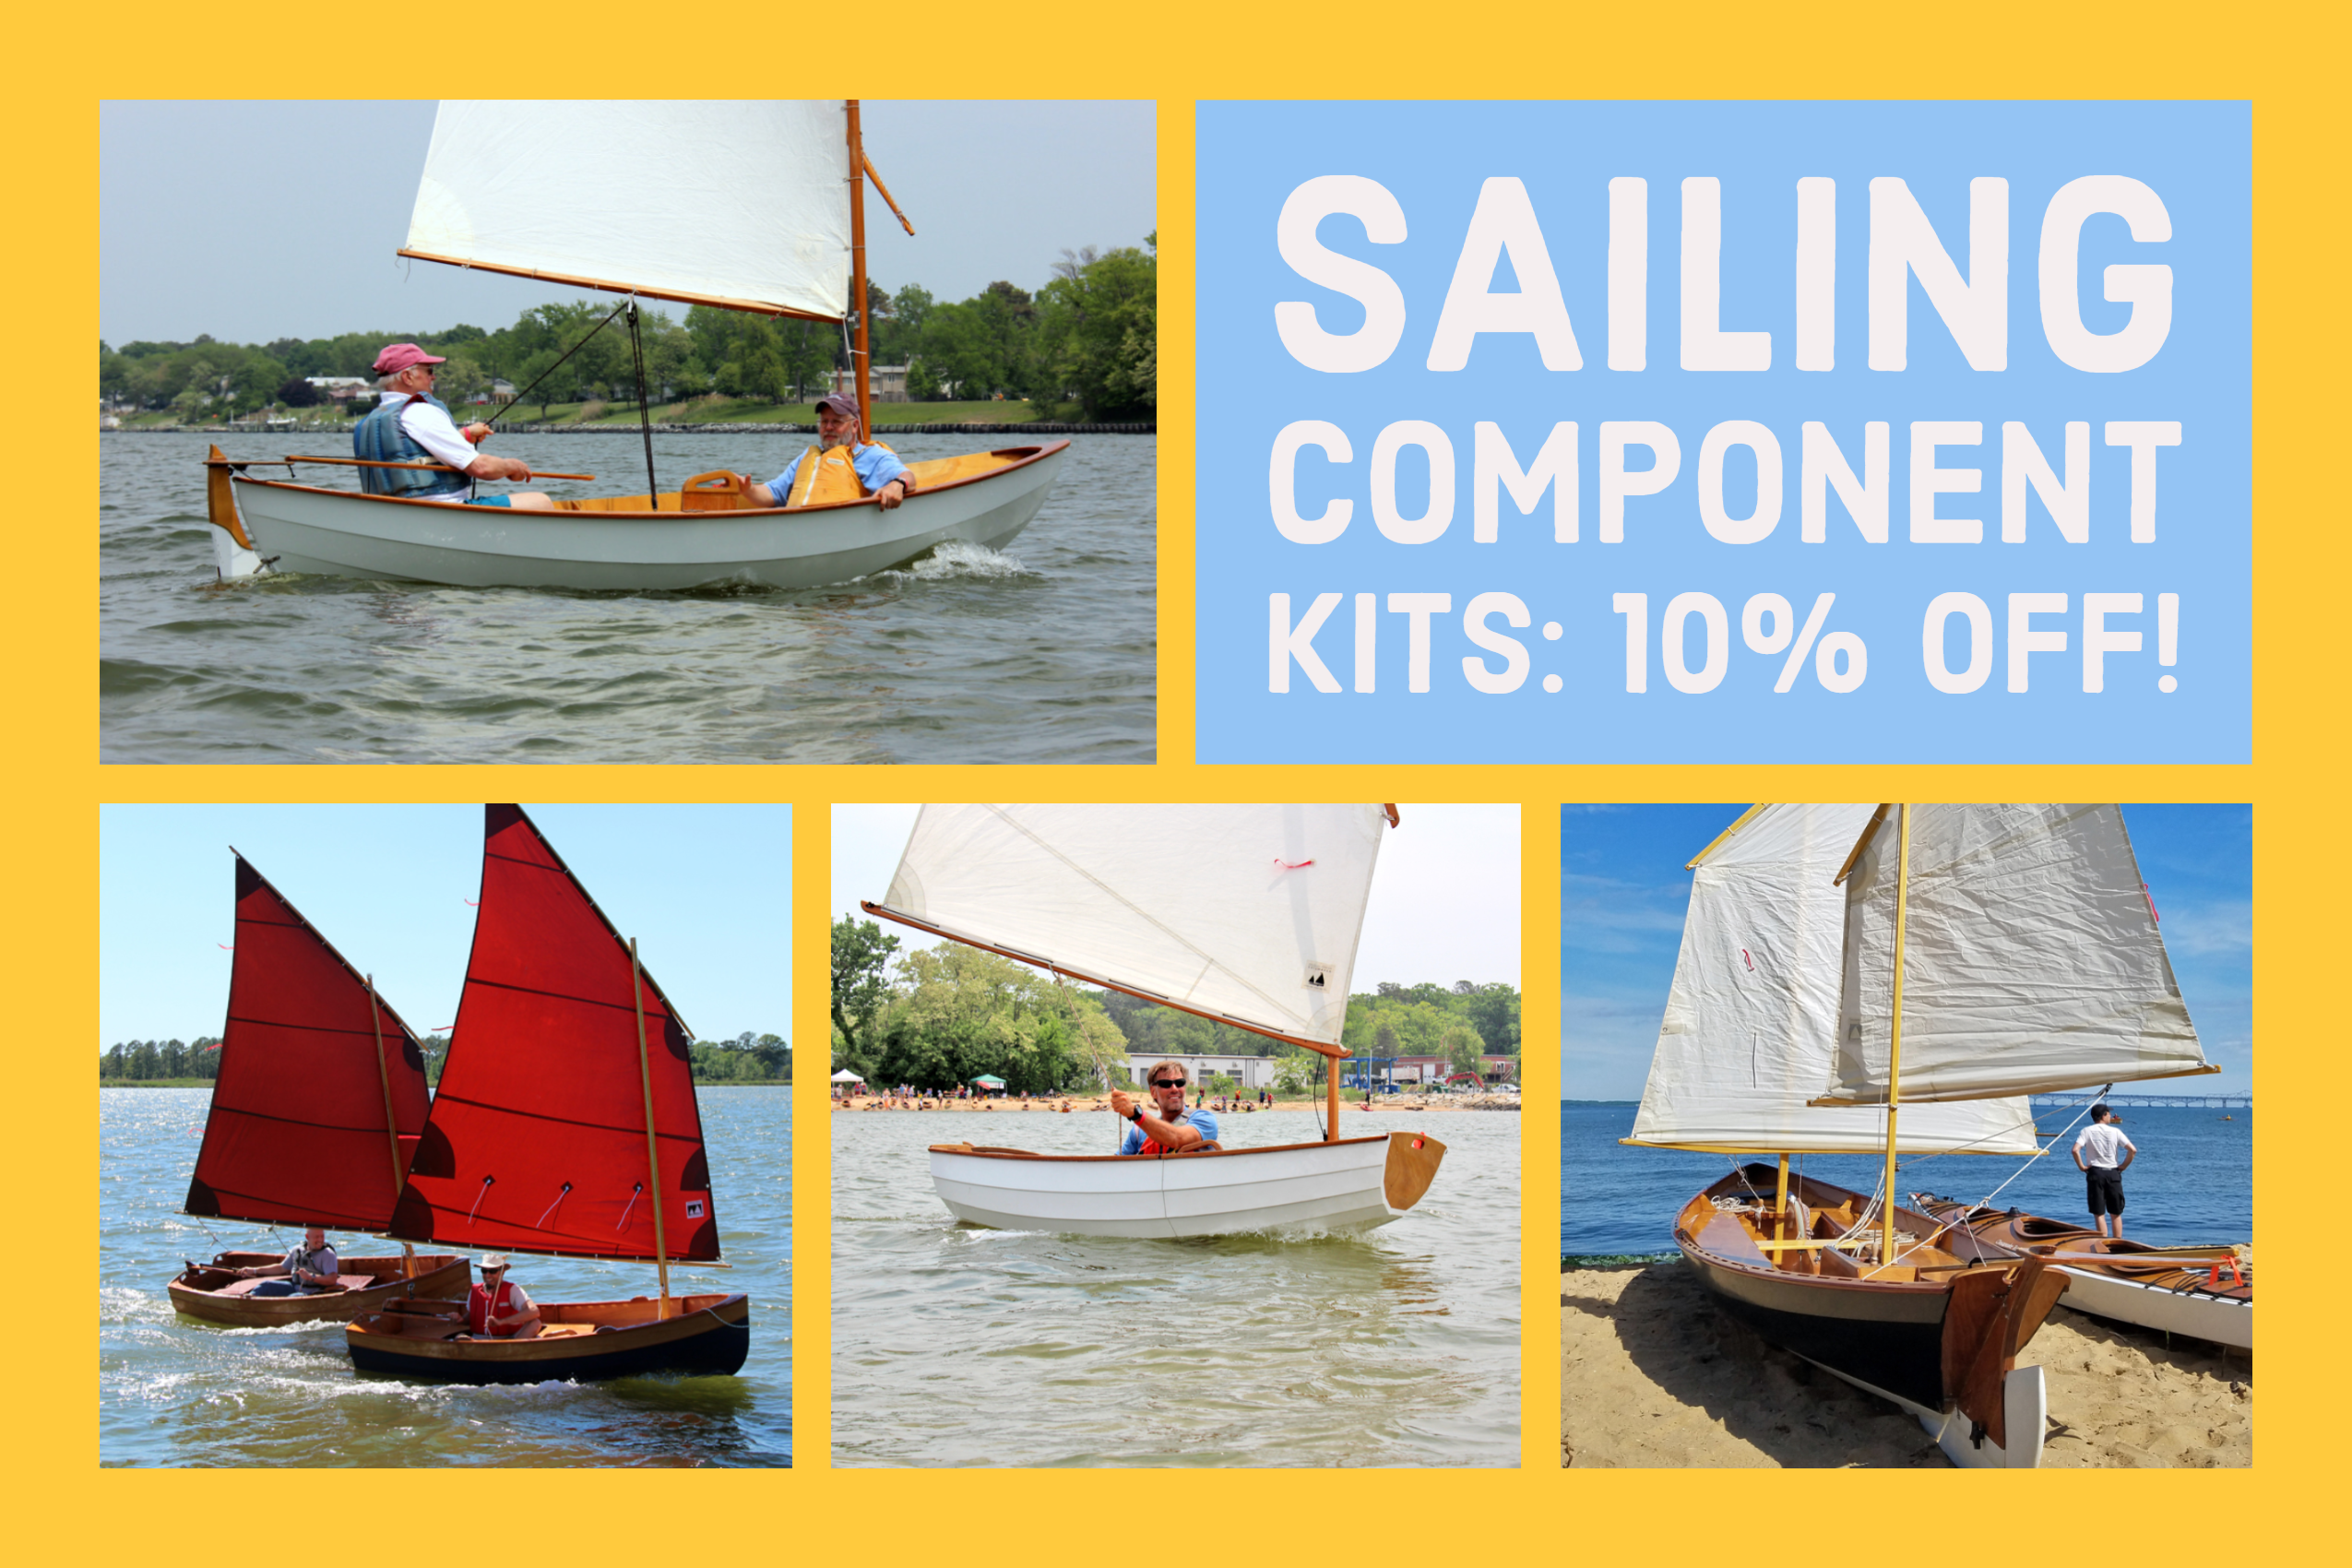 Save on Sailing Kits!